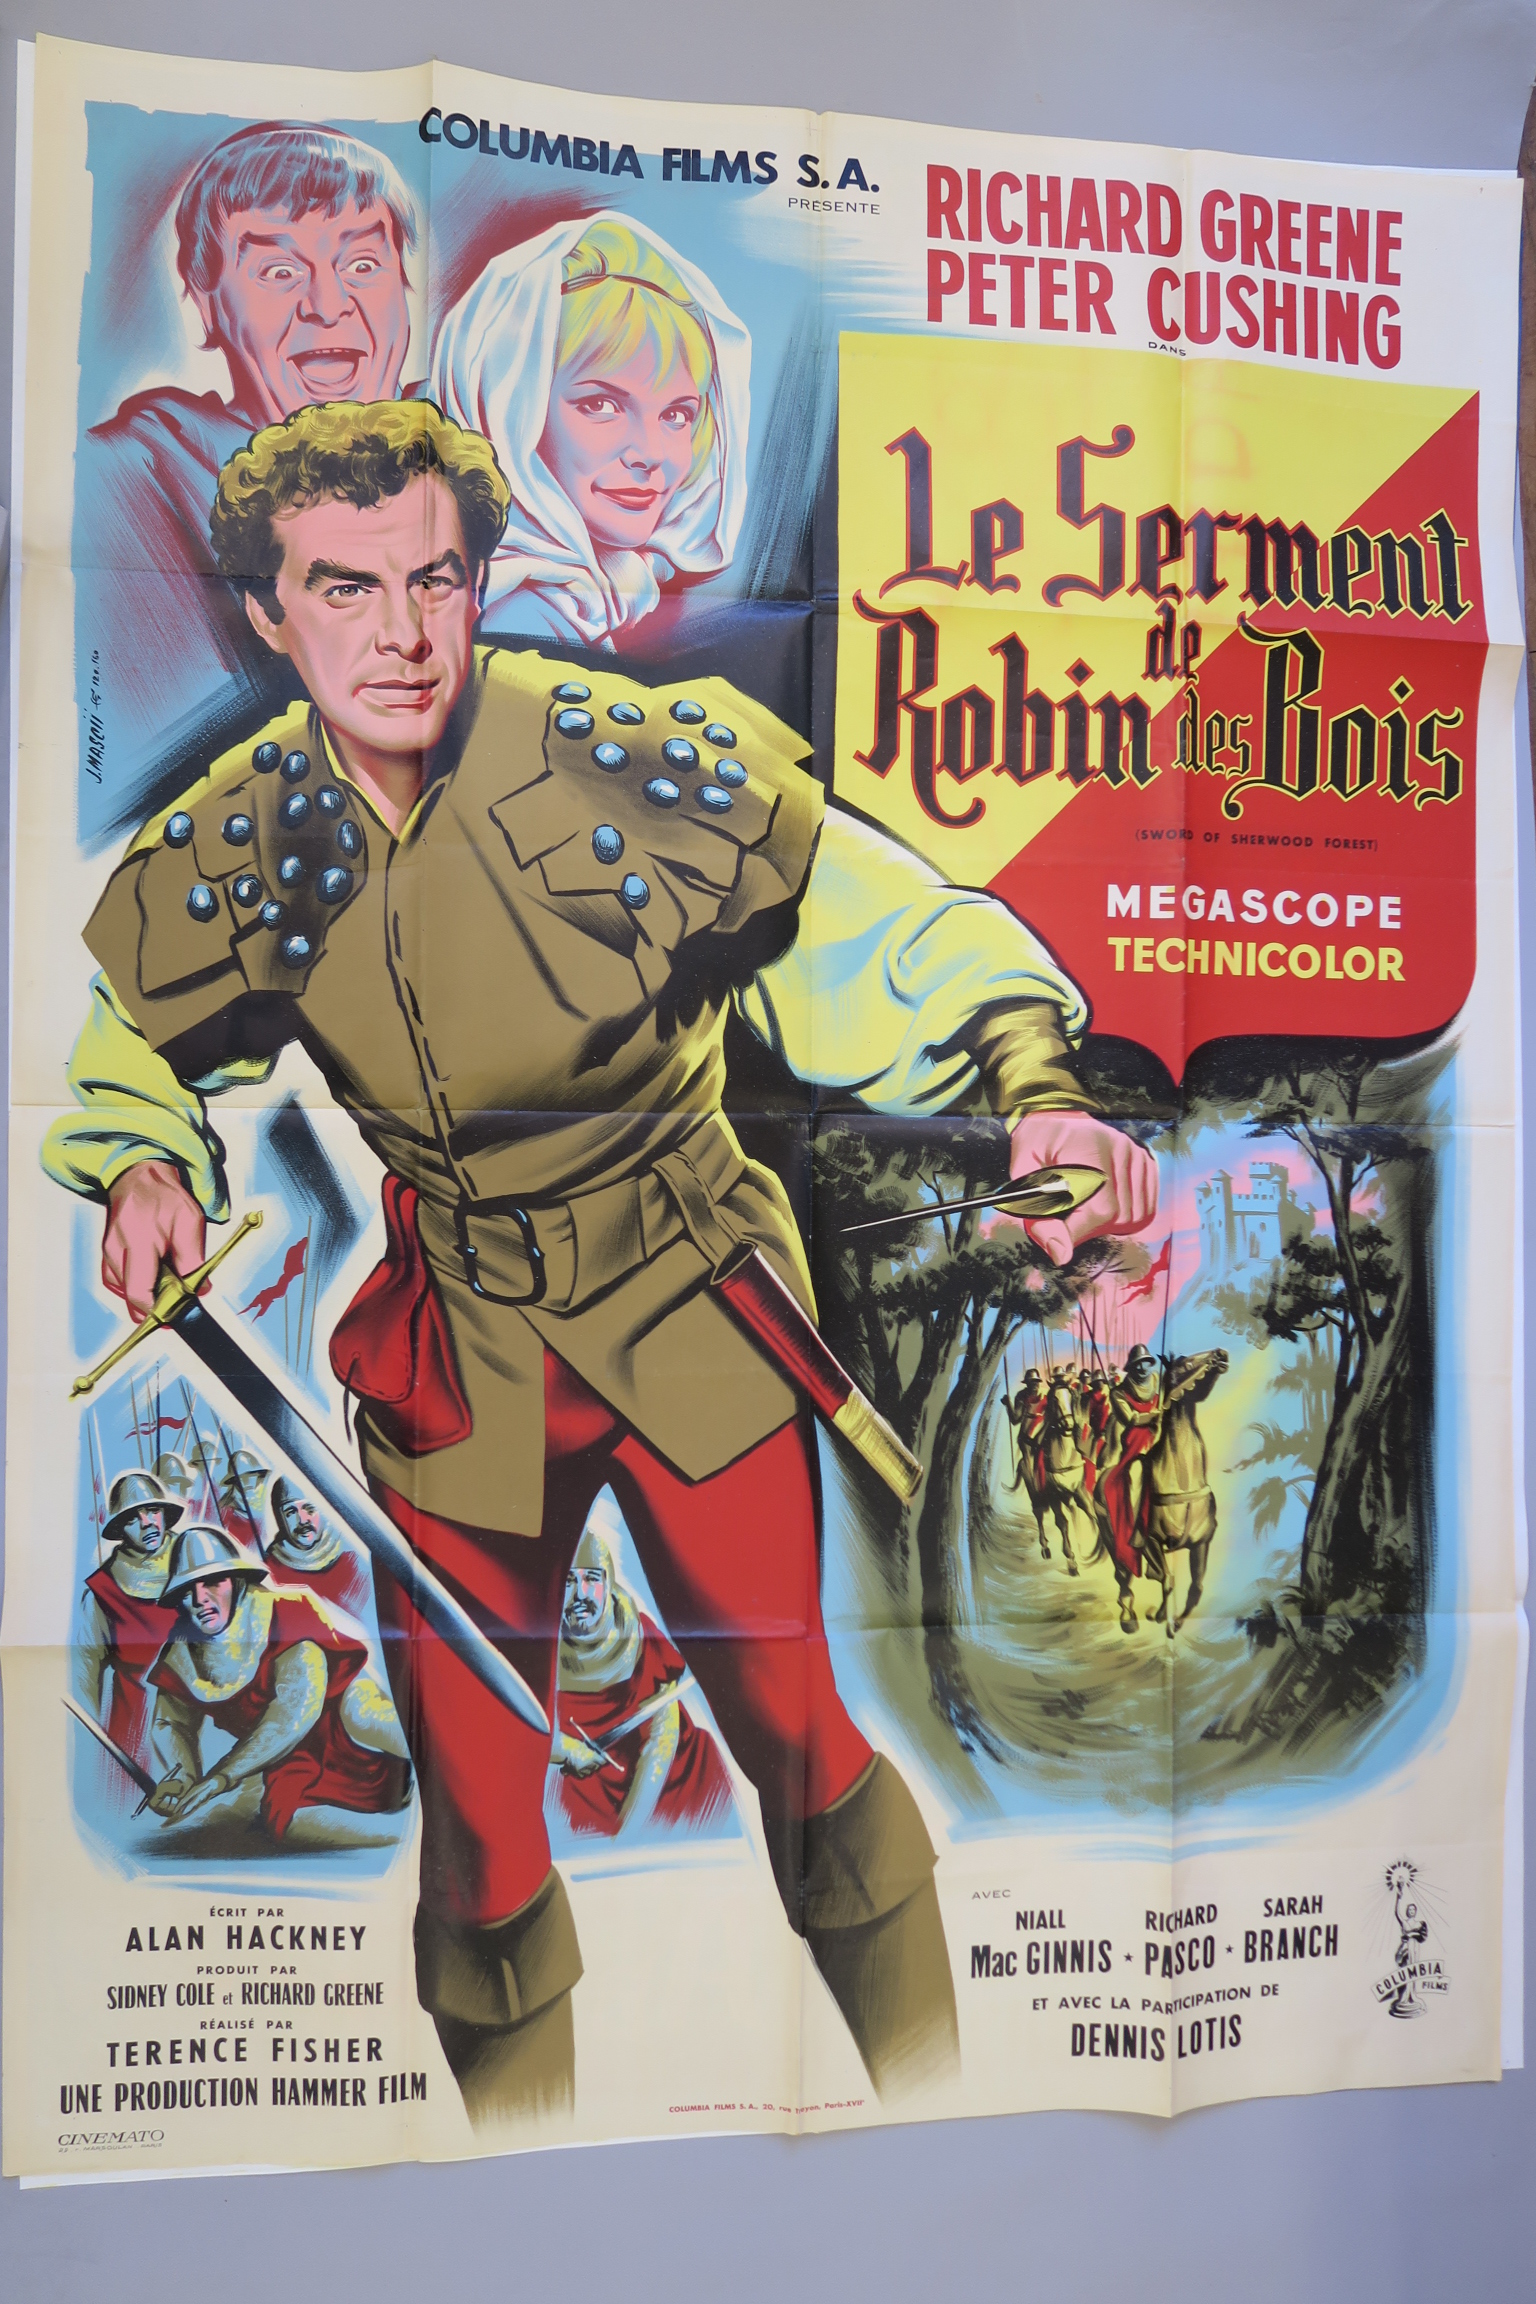 Lot 36 - 6 French Grande film posters inc Quo Vadis with art by Jean Mascii, Fall of the Roman Empire,